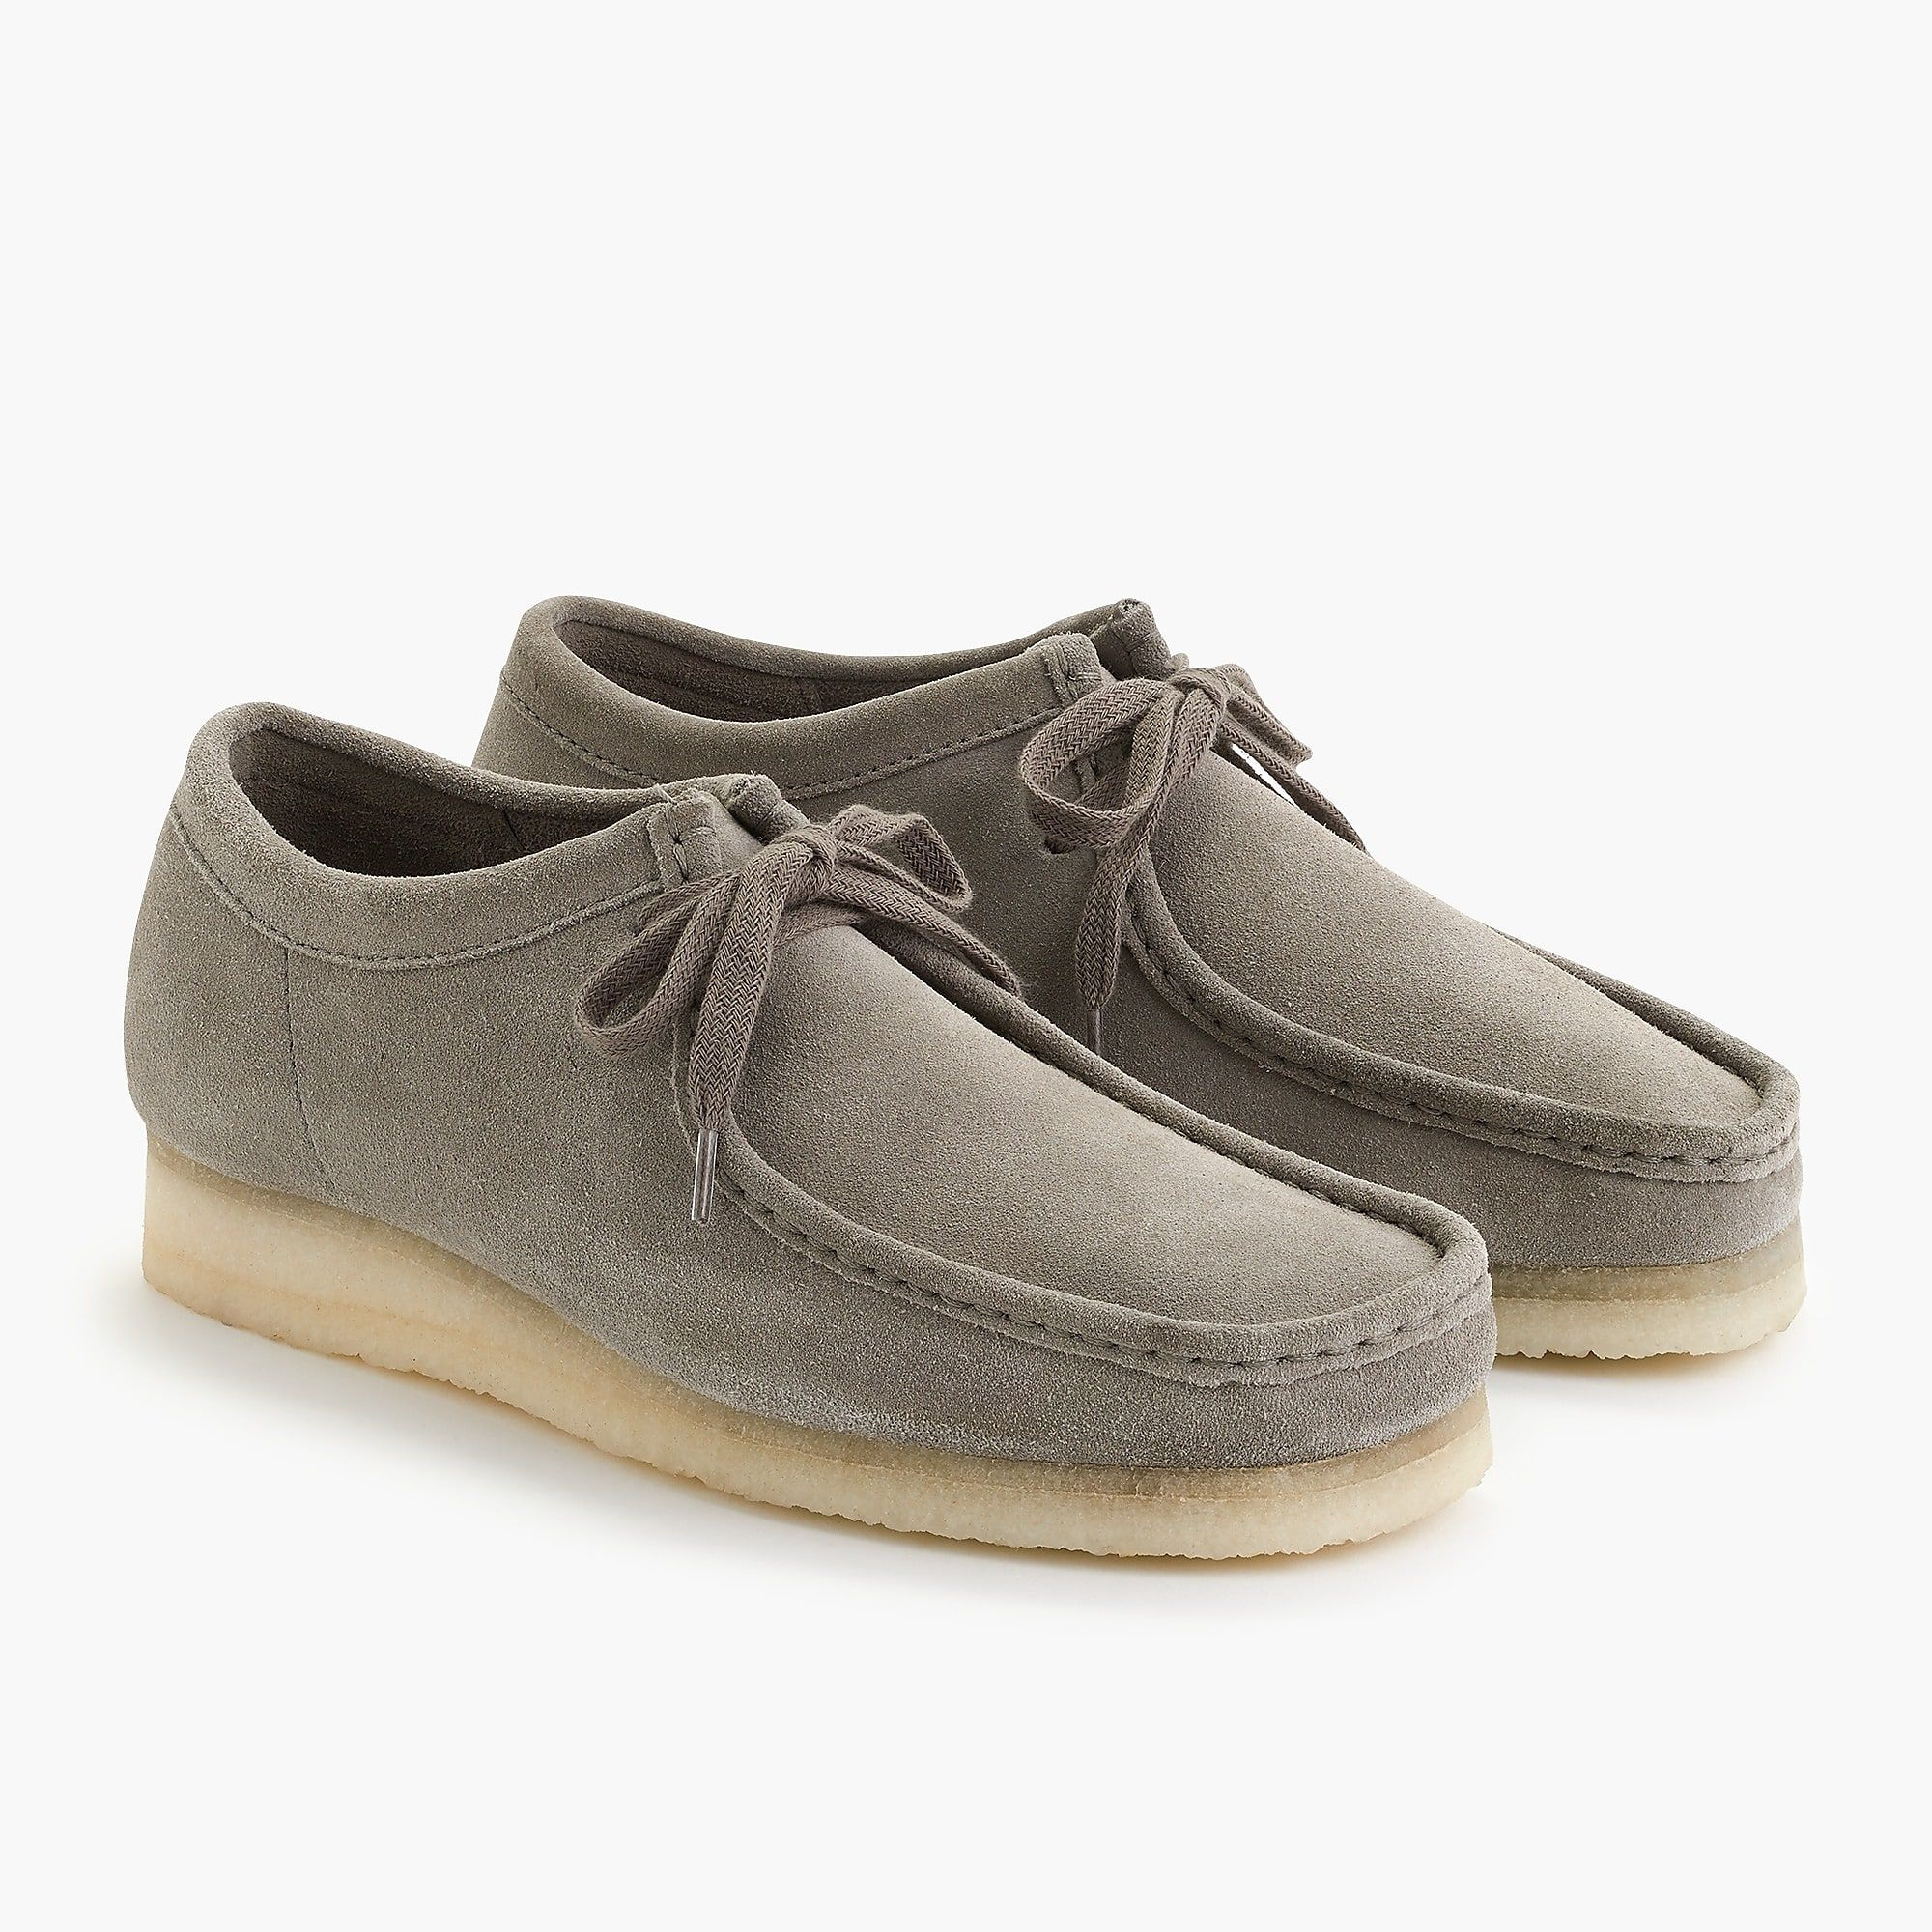 Clarks® Originals Wallabee® shoes in suede | Clarks